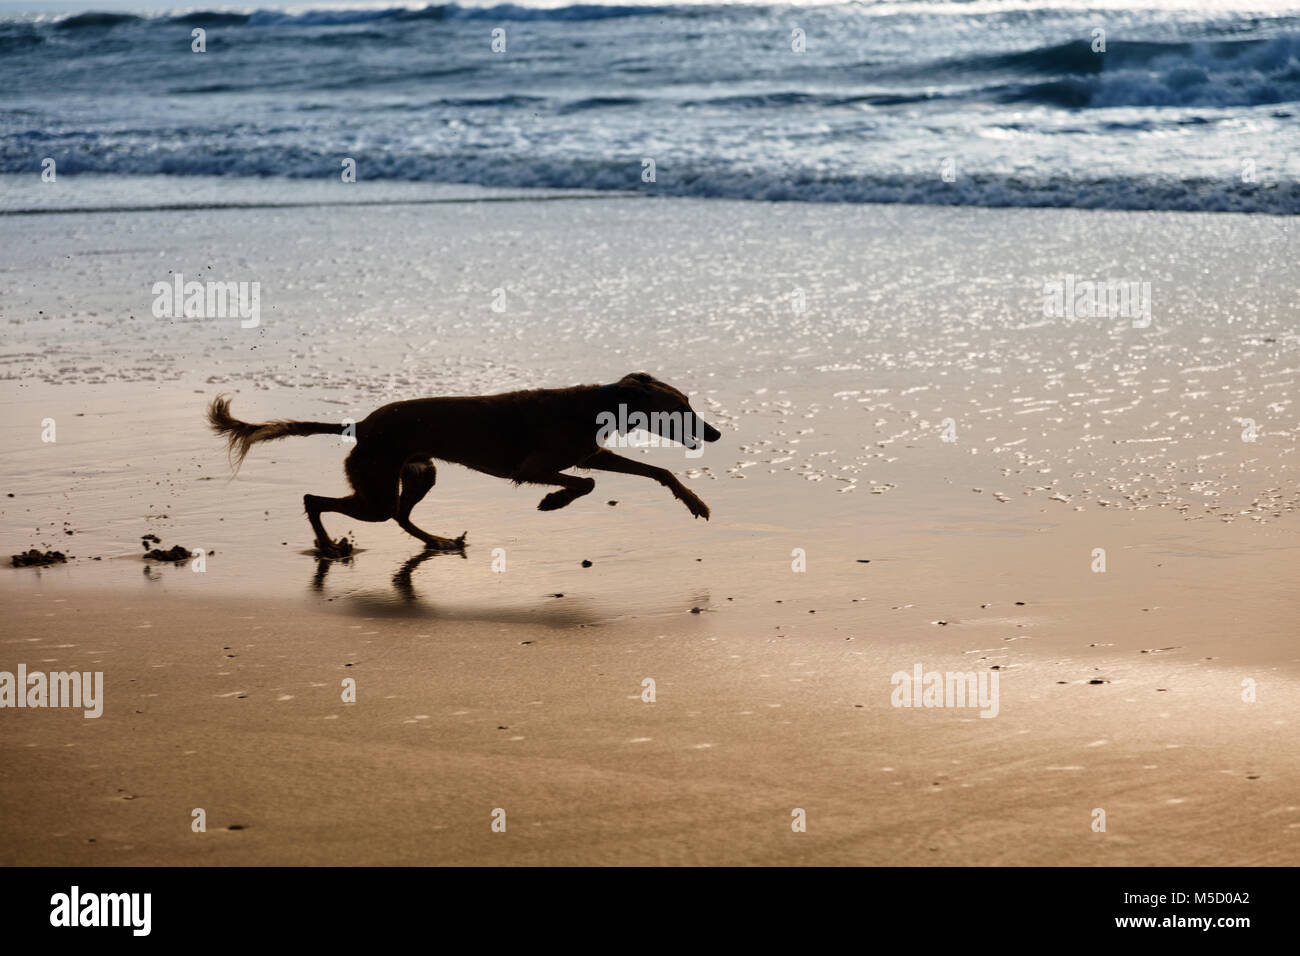 Silhouette of a lurcher (saluki - greyhound) running at speed on the beach on wet sand near the sea. - Stock Image